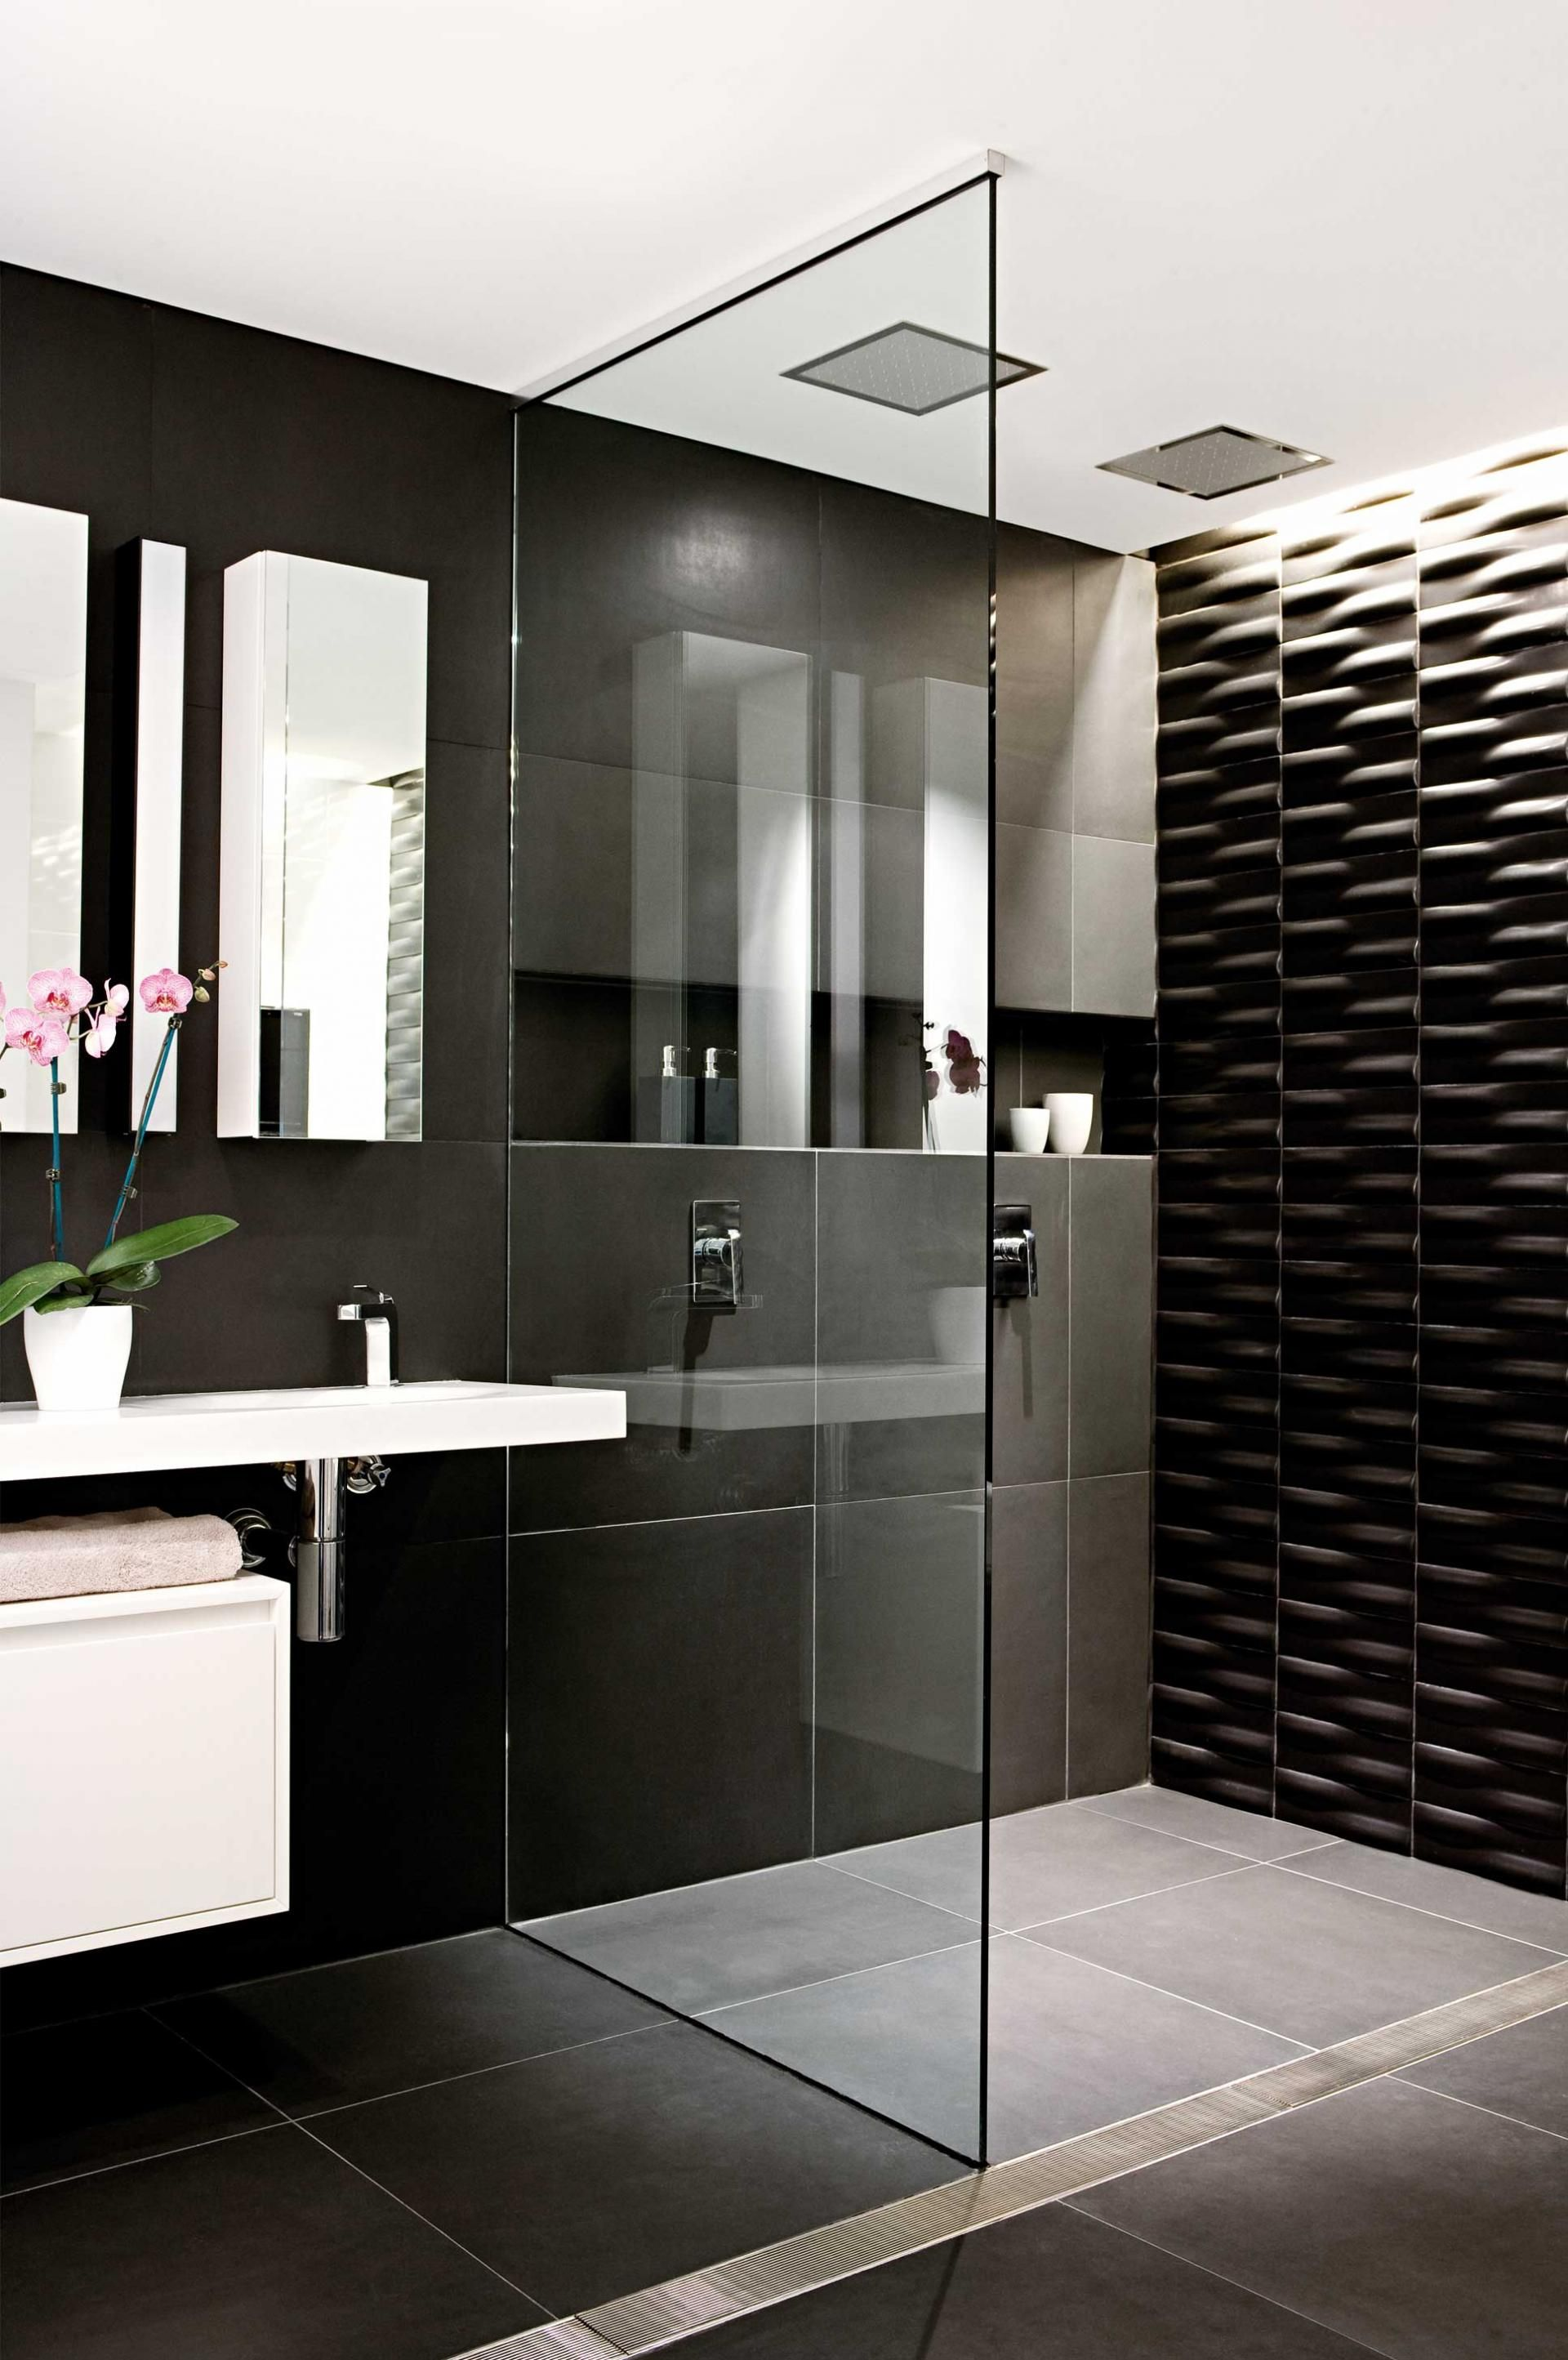 Exceptional 10 Black And White Bathrooms. Styling By Vanessa Colyer Tay. Photography By  Sam McAdam Cooper.